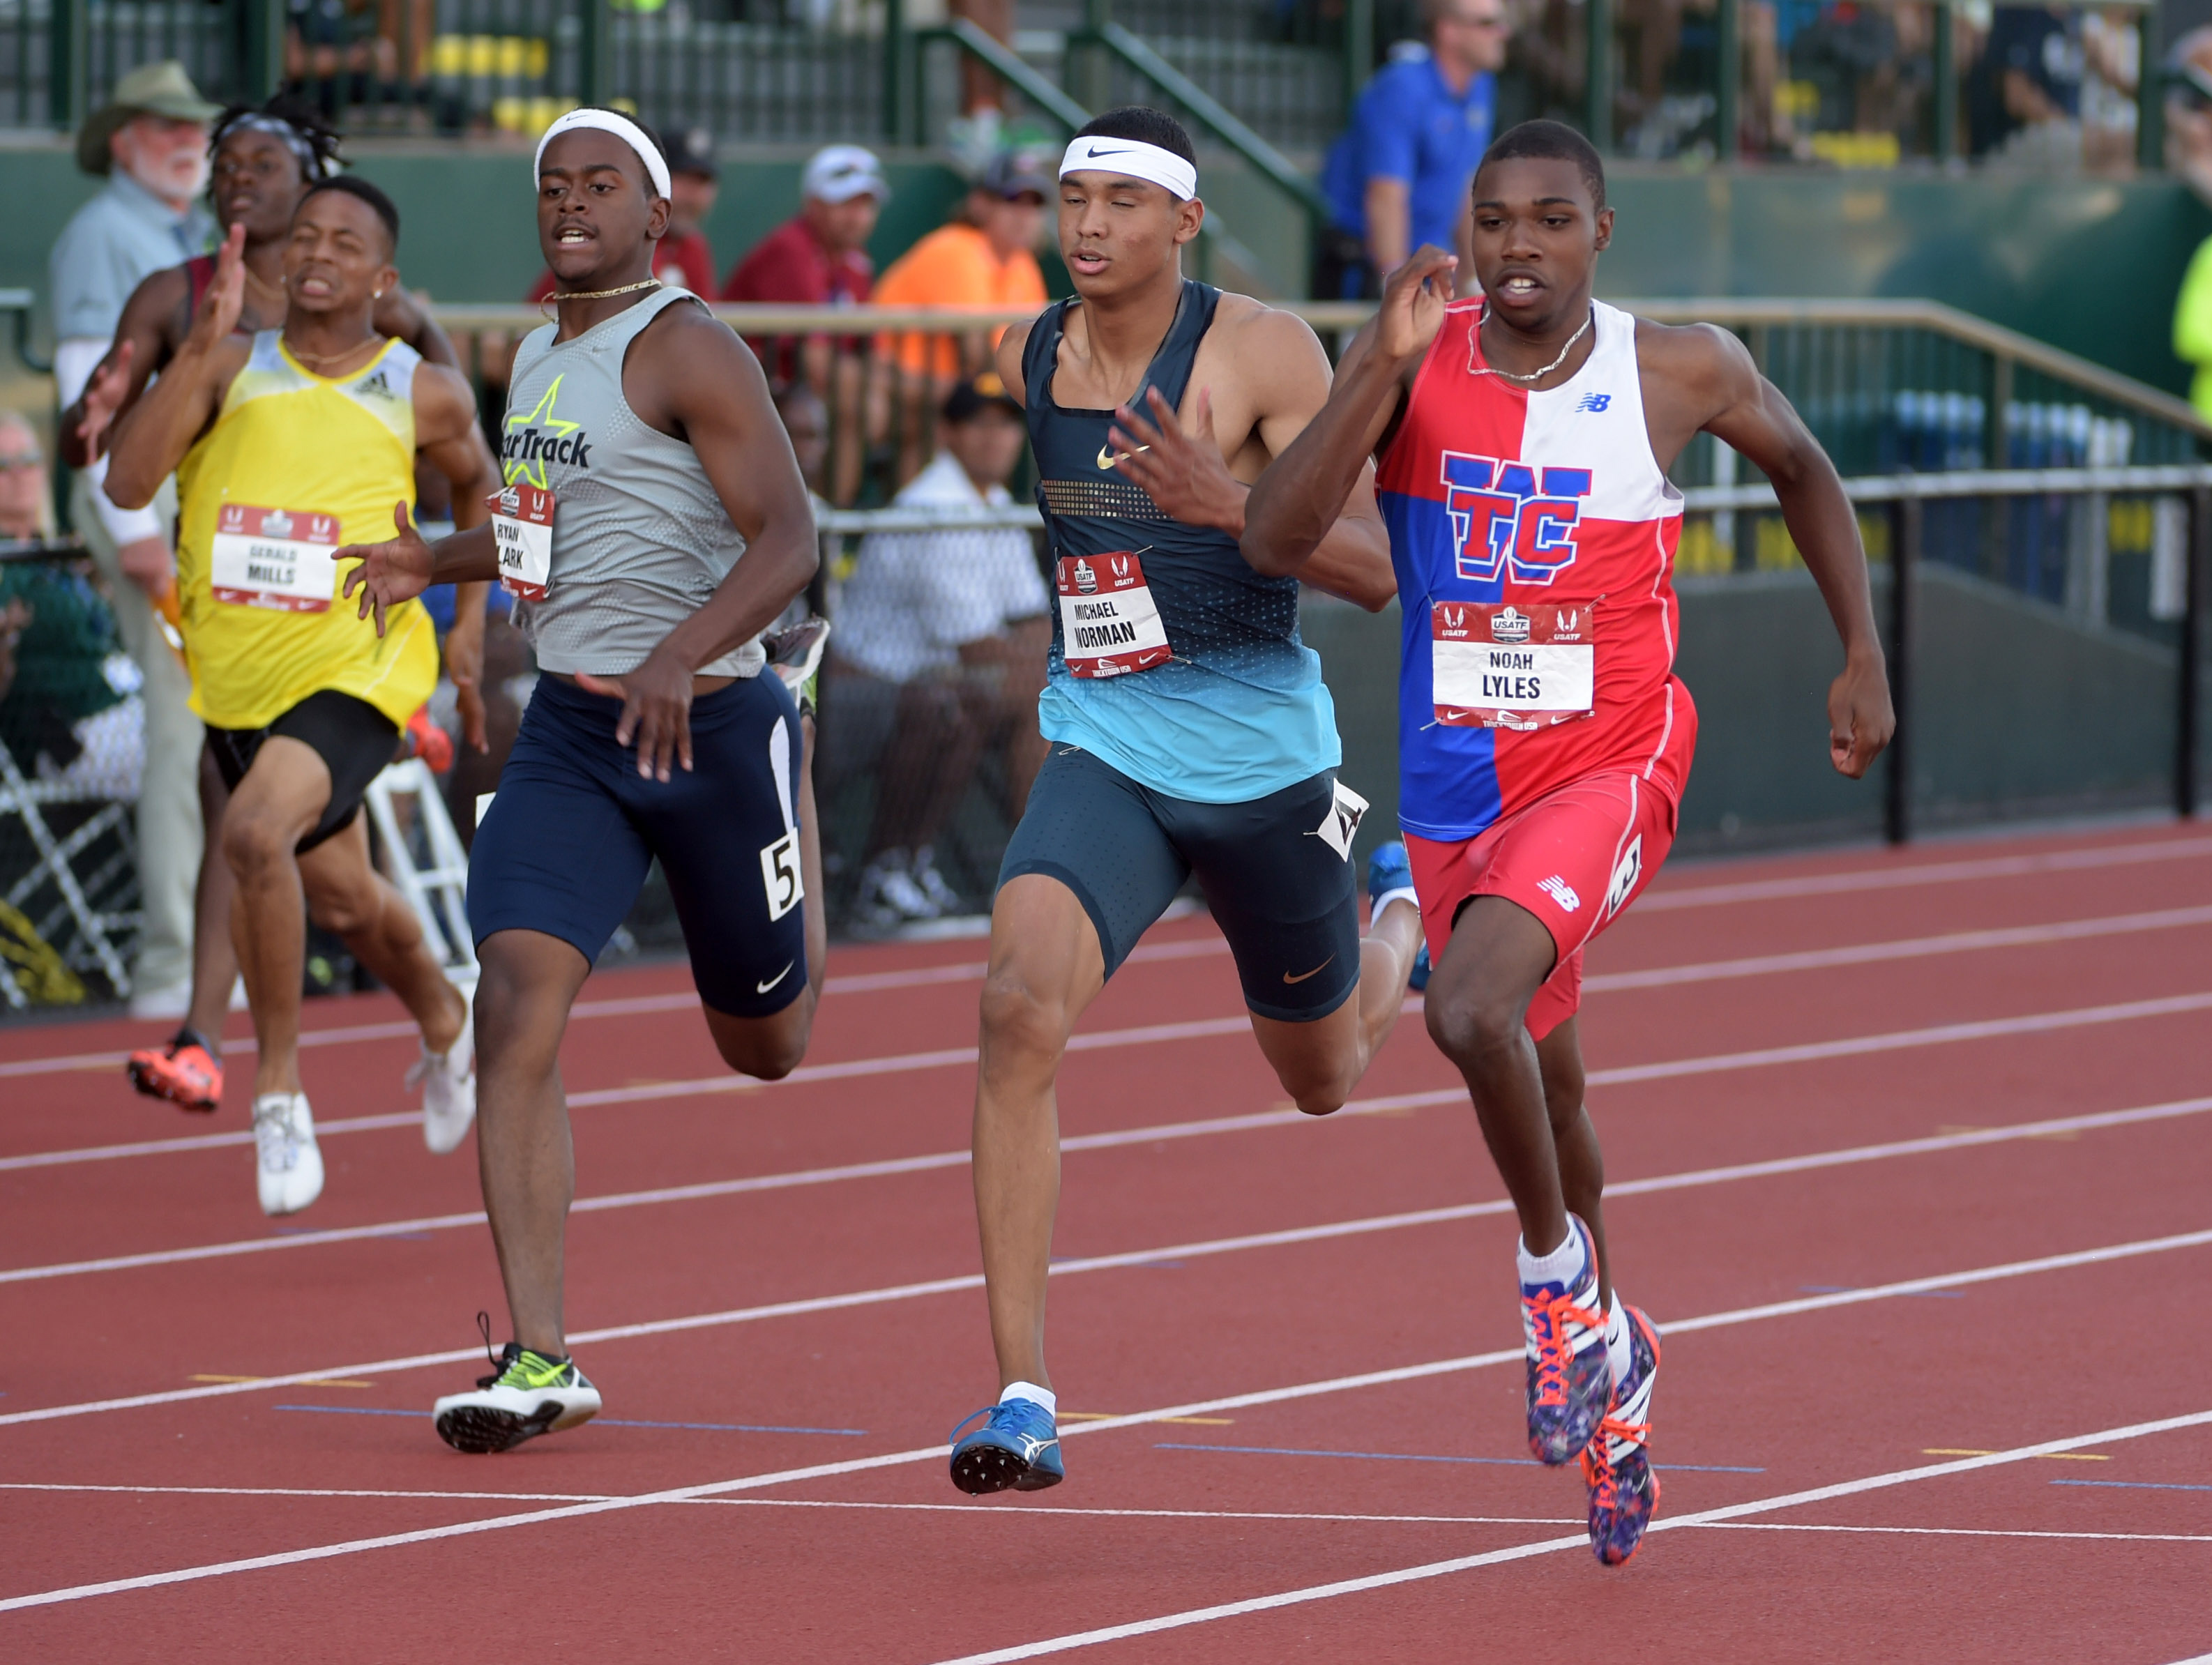 Noah Lyles (right) defeats Michael Norman (center) and Ryan Clark to win the junior 200m in 20.18 in the 2015 USA Championships. (Photo: Kirby Lee, USA TODAY Sports)